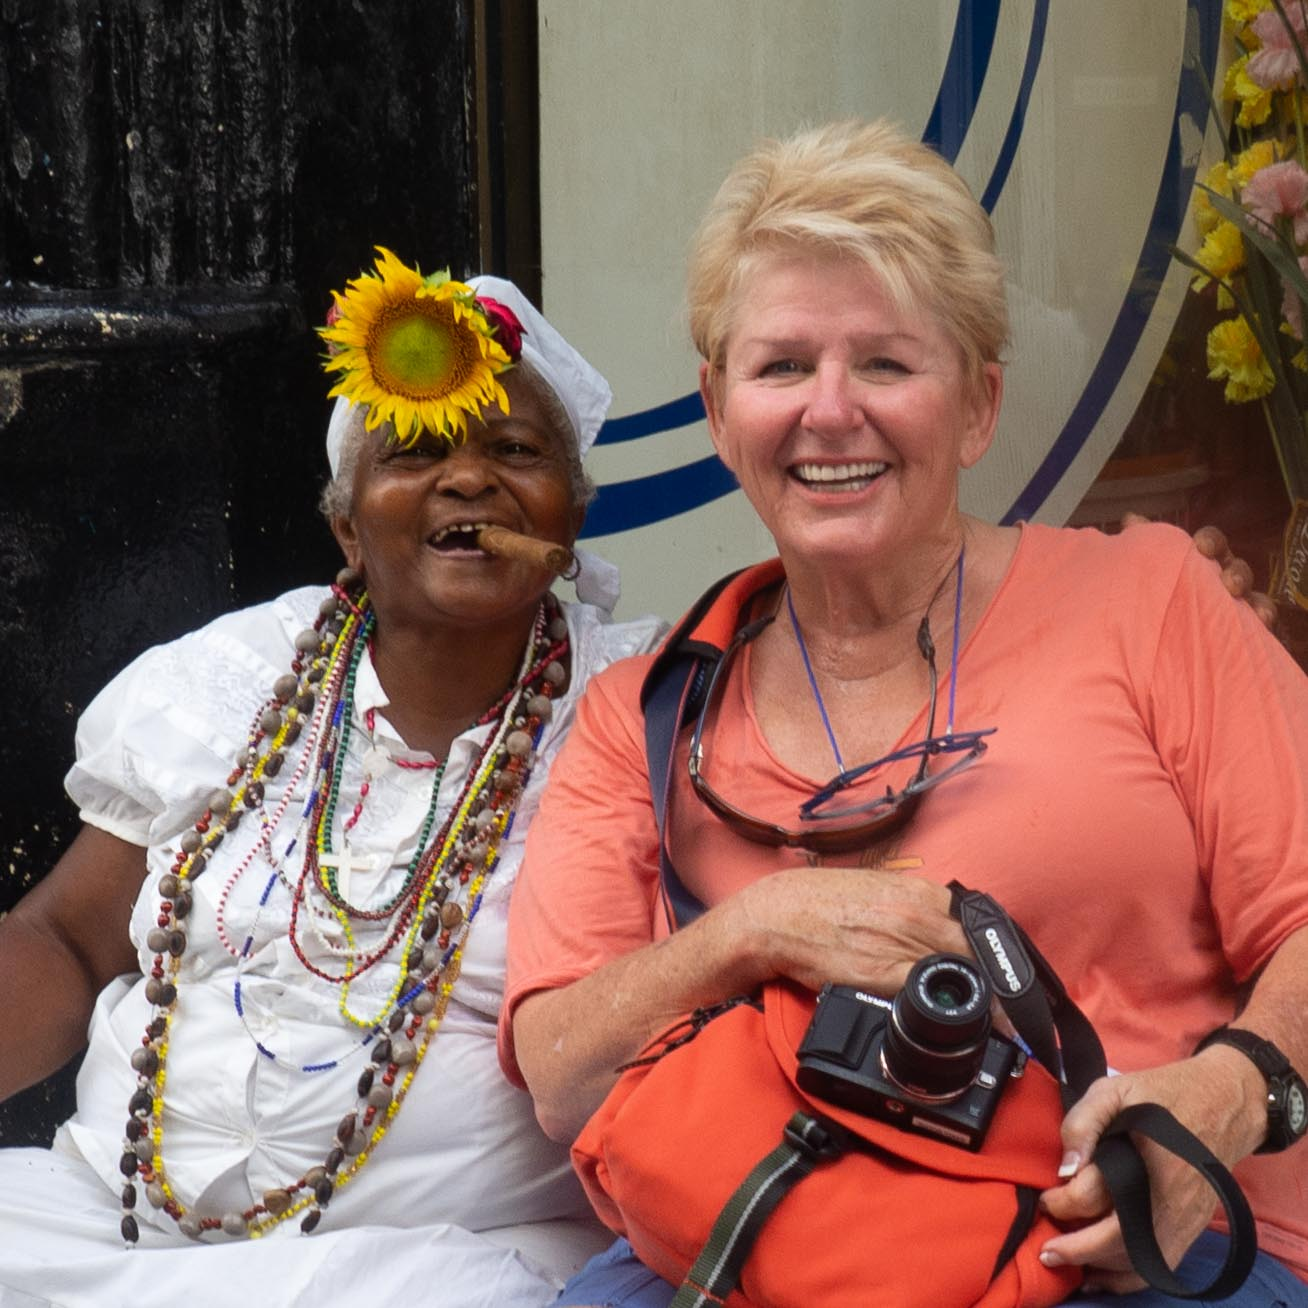 In Old Havana Cuba with a cigar lady.  You pay for your picture.